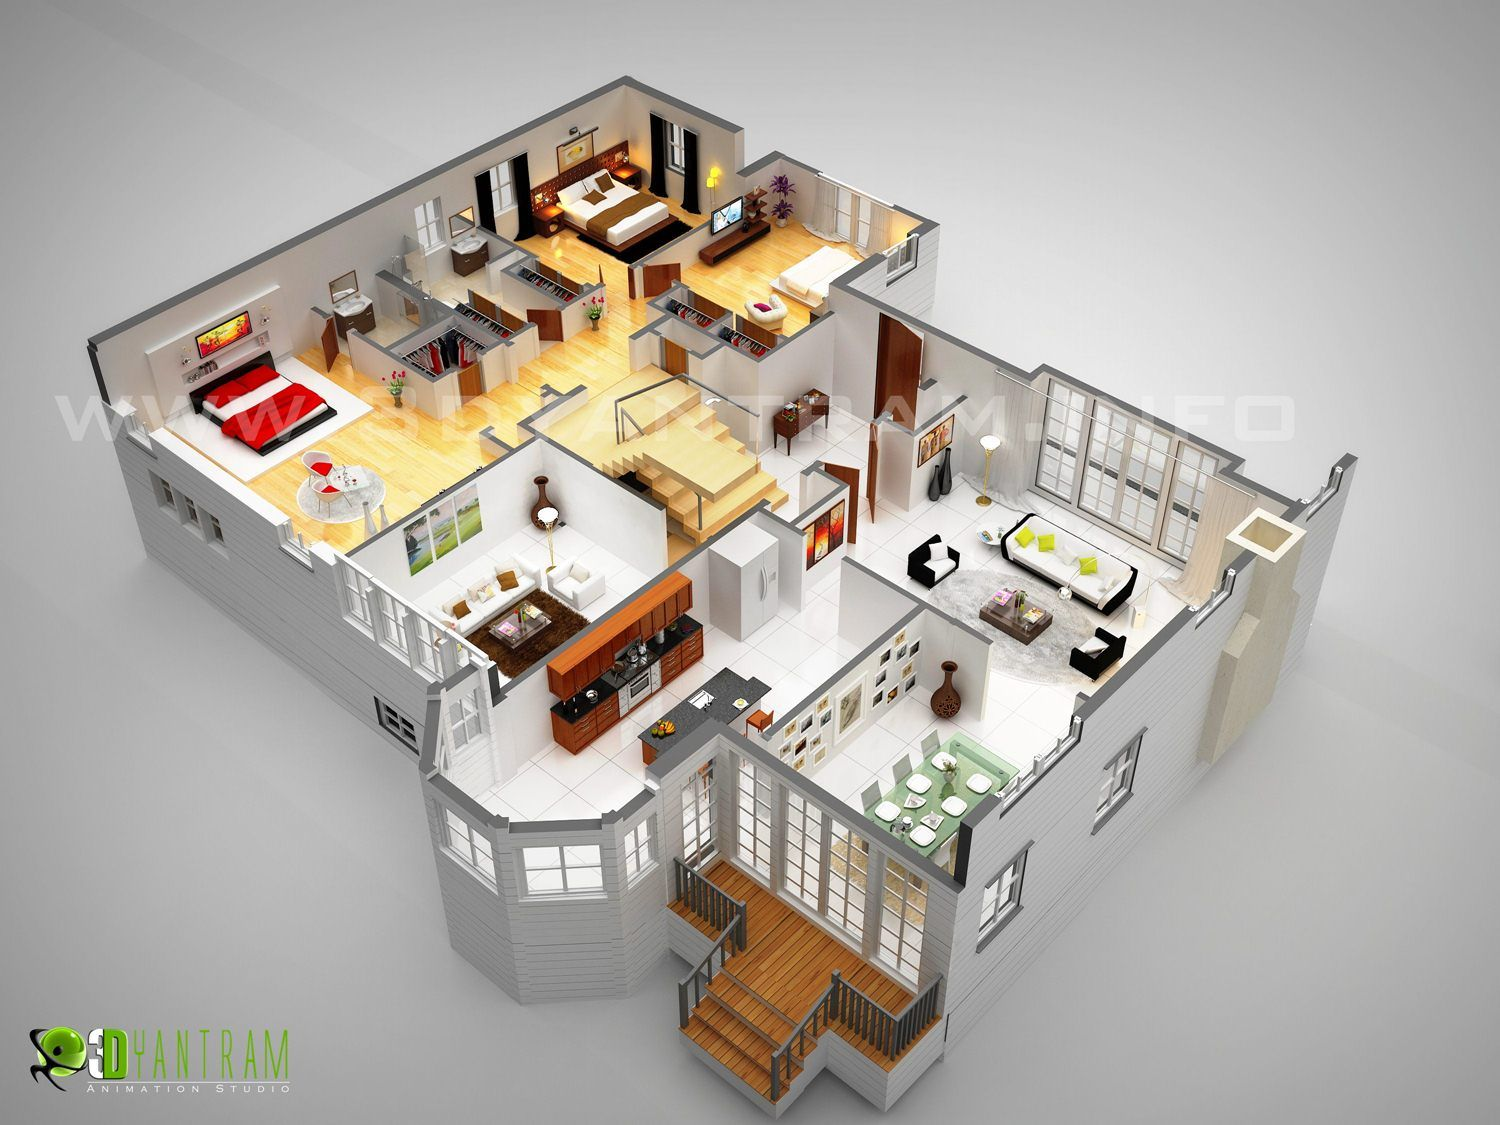 25 best House Floor Plan Design ideas on PinterestGuest house